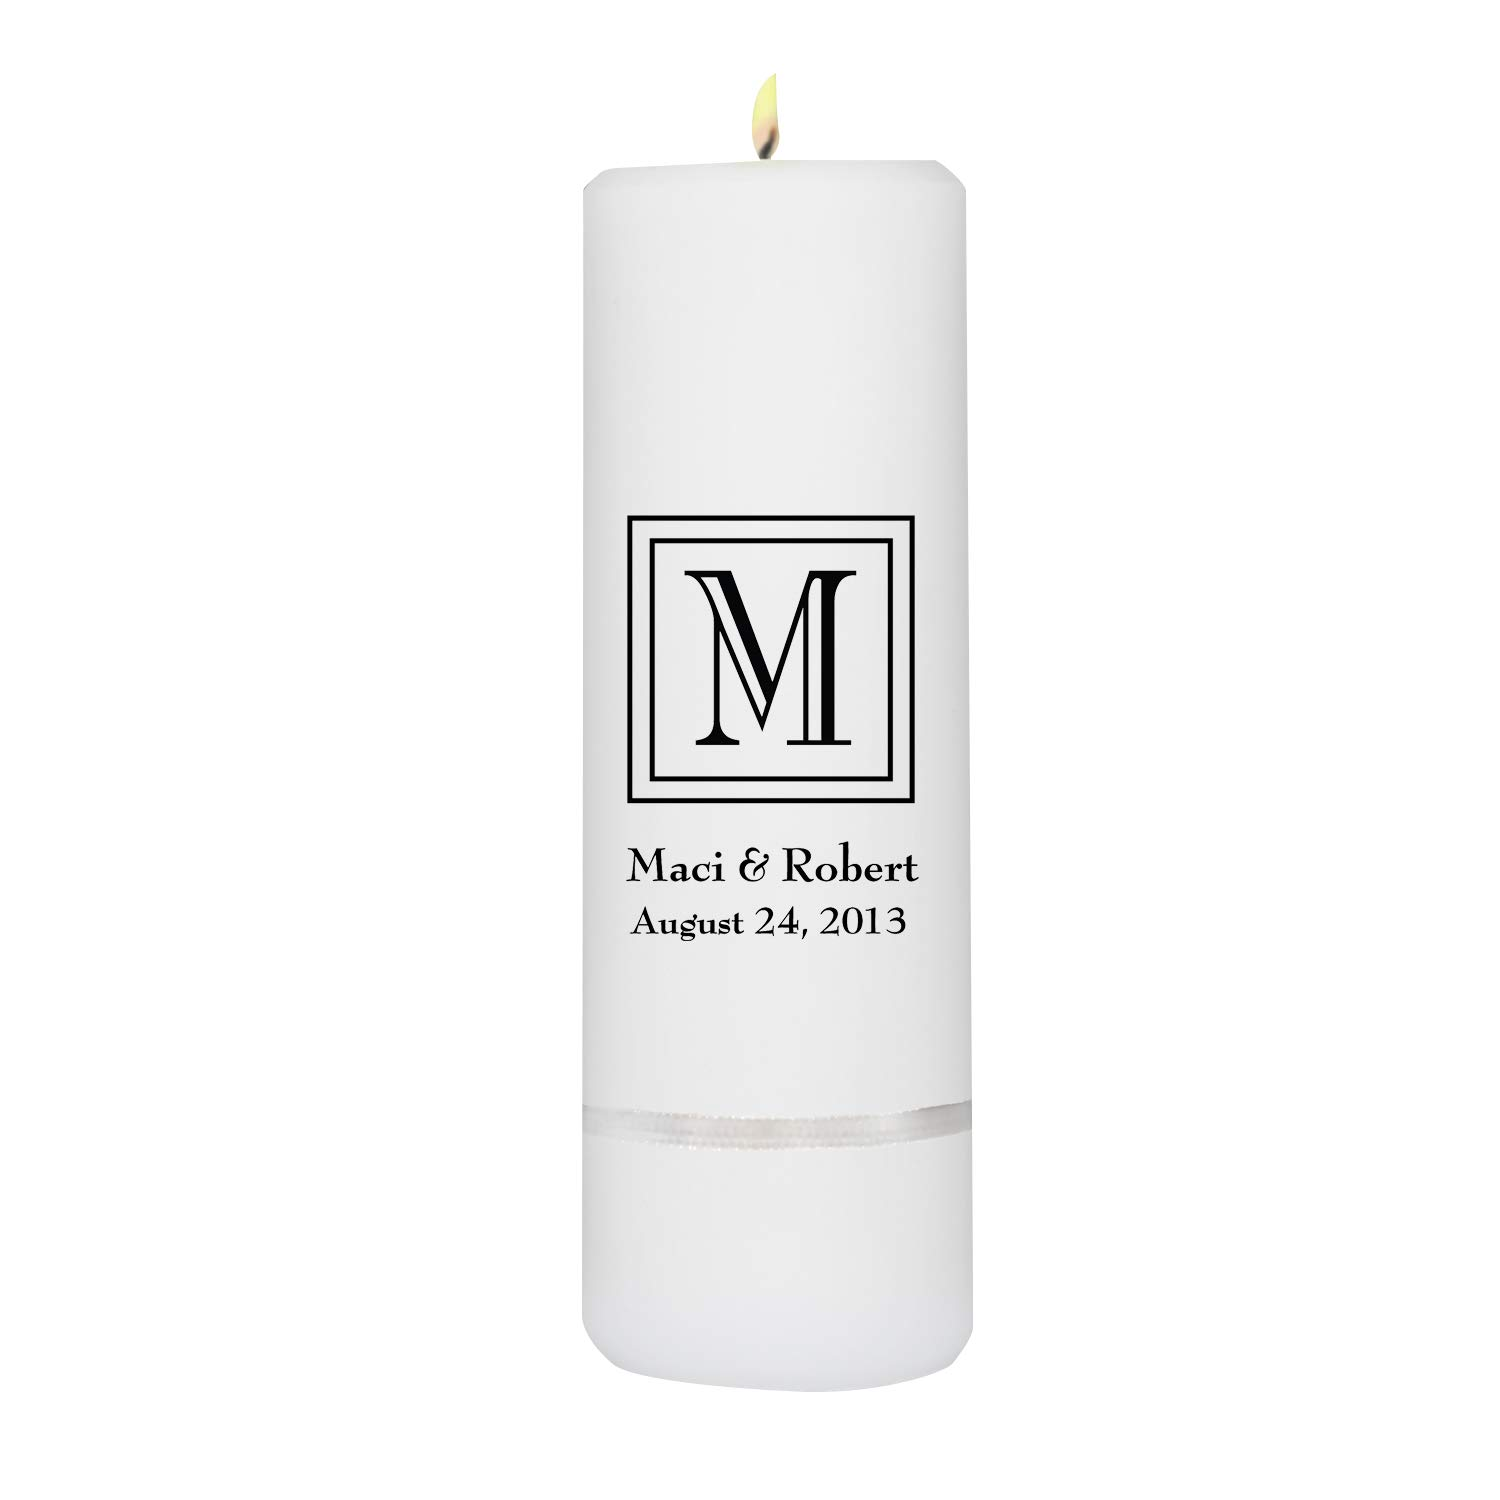 Personalized Unity Candle - Personalized Unity Wedding Candle - Wedding Gift - Monogrammed Unity Candle - 3''x 9'' by A Gift Personalized